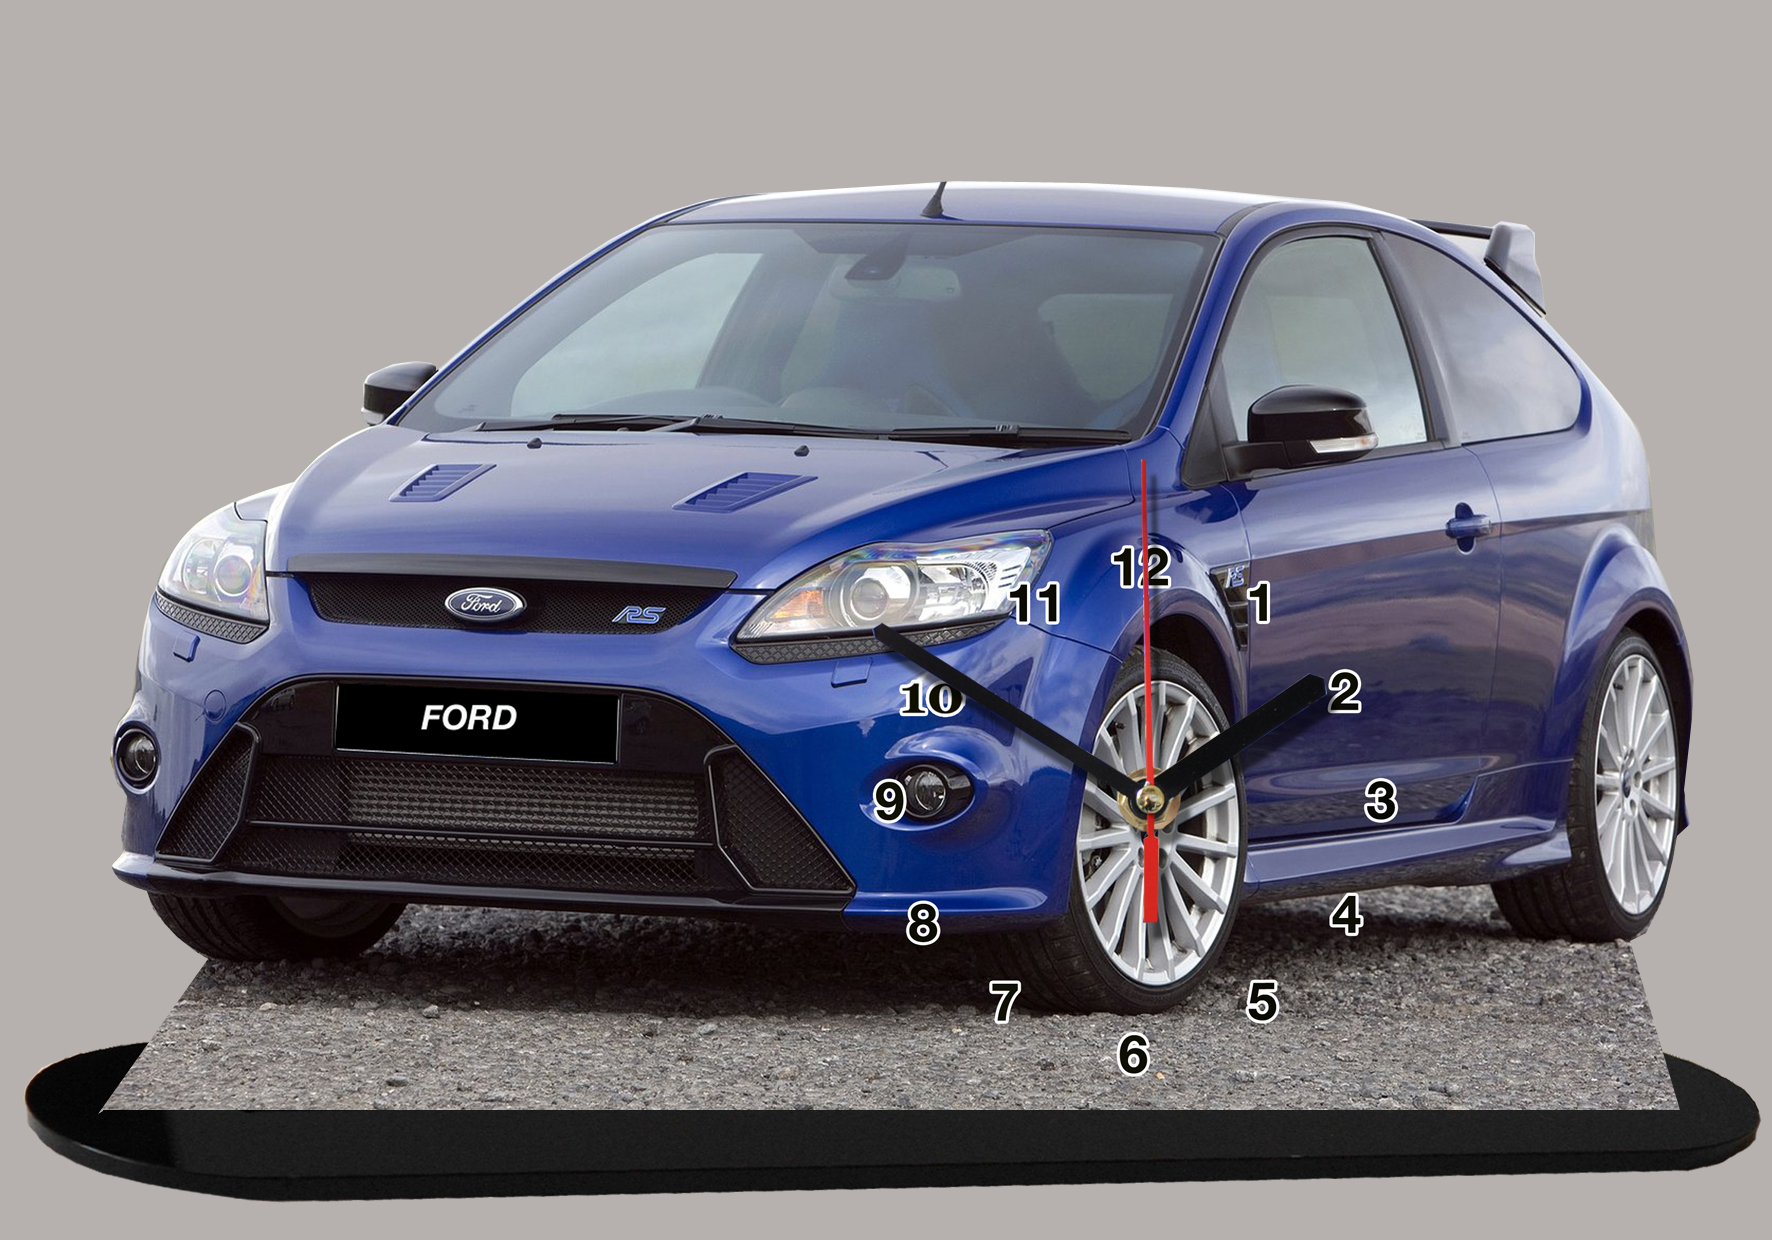 ford focus bleue rs 03 auto horloge miniature. Black Bedroom Furniture Sets. Home Design Ideas